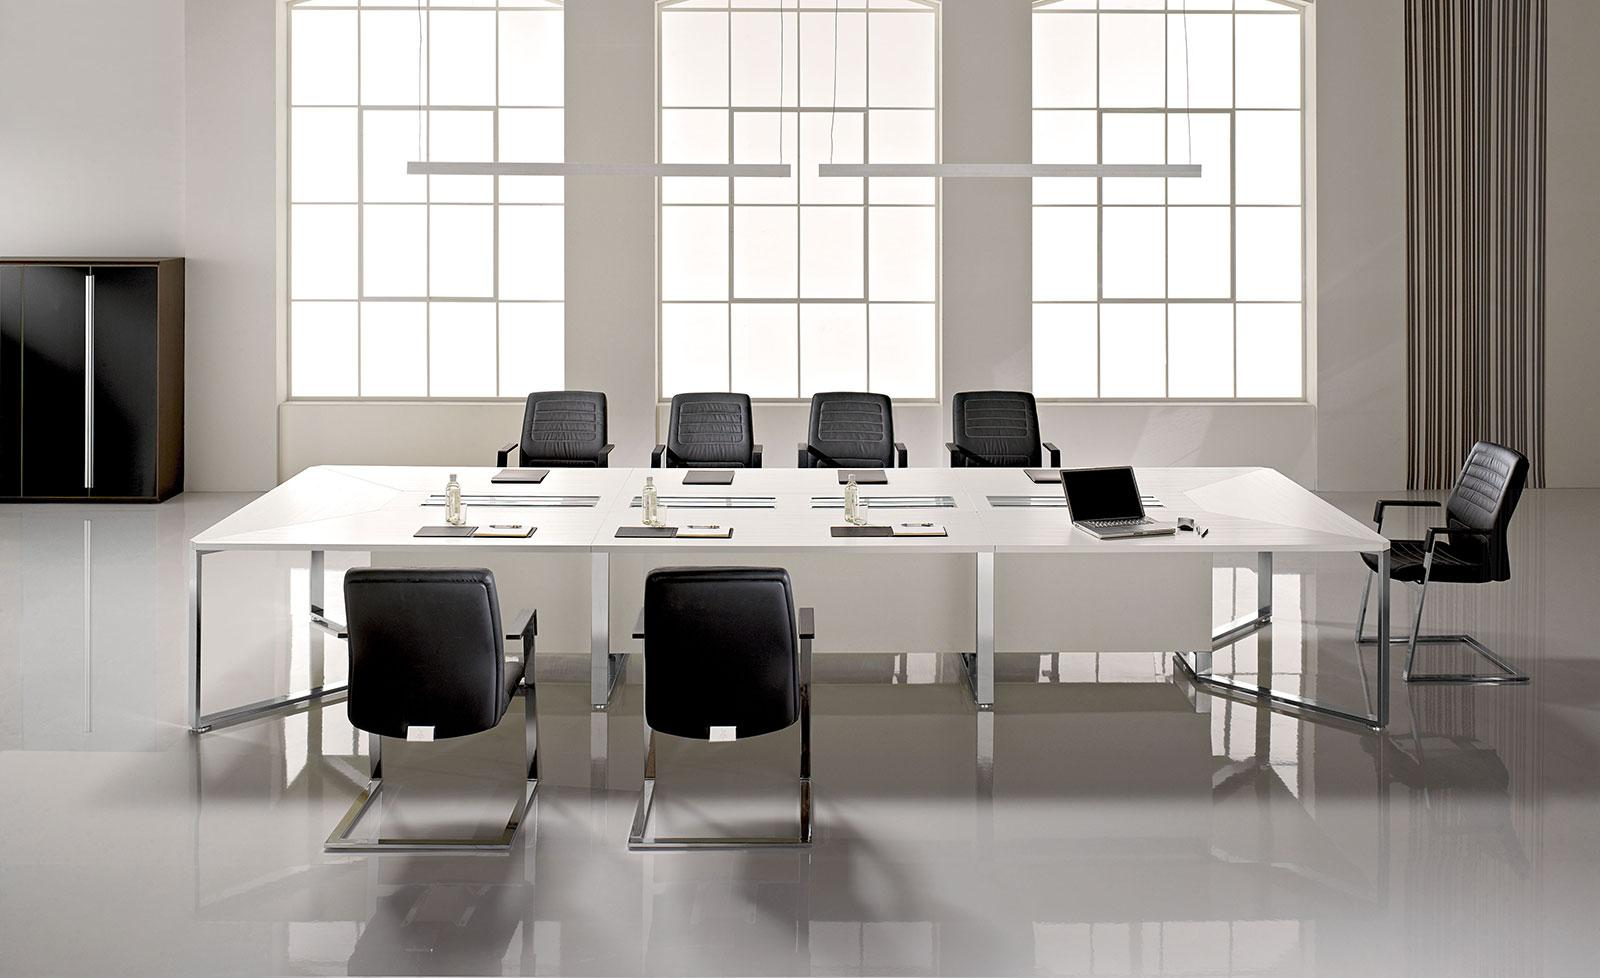 meeting table chairs size business furniture stores shops choice design delivery factors sale home house italia market makers quality retailers websites